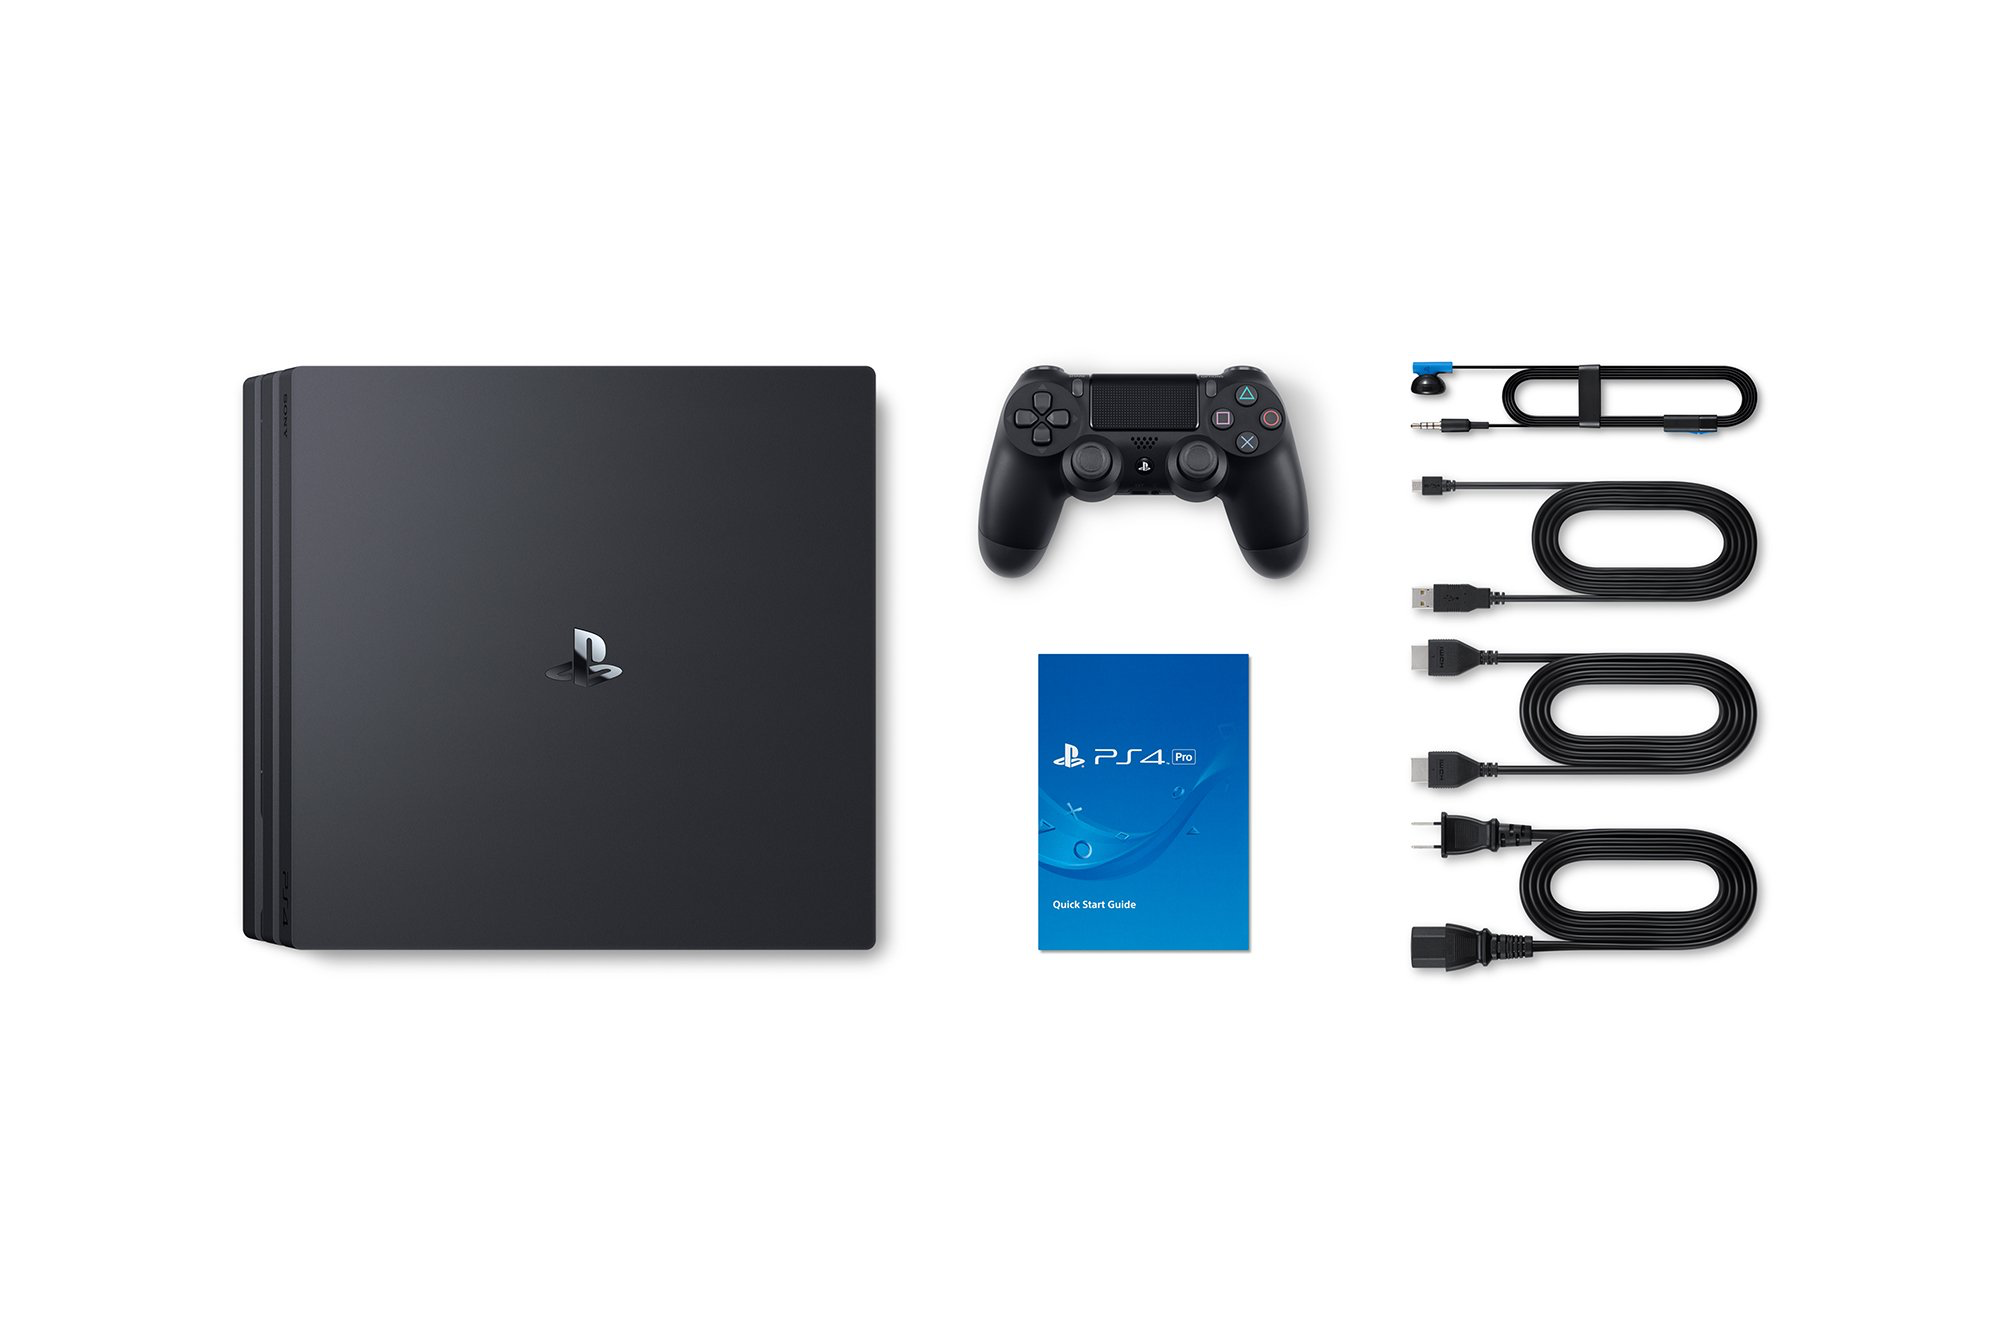 Ps 4 Pro Playstation Ps4 Pro Console Ps4 Pro